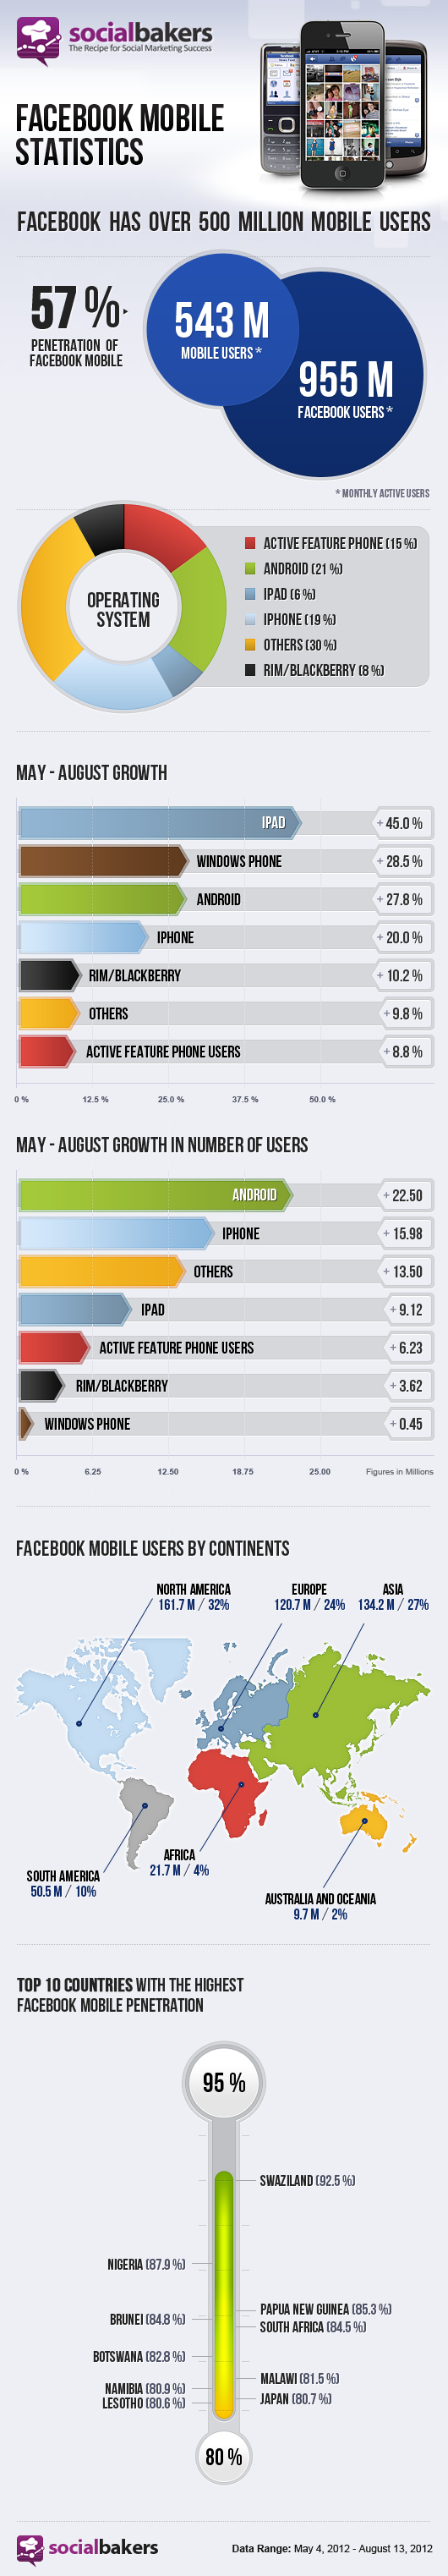 Facebook 500 Mio mobile User